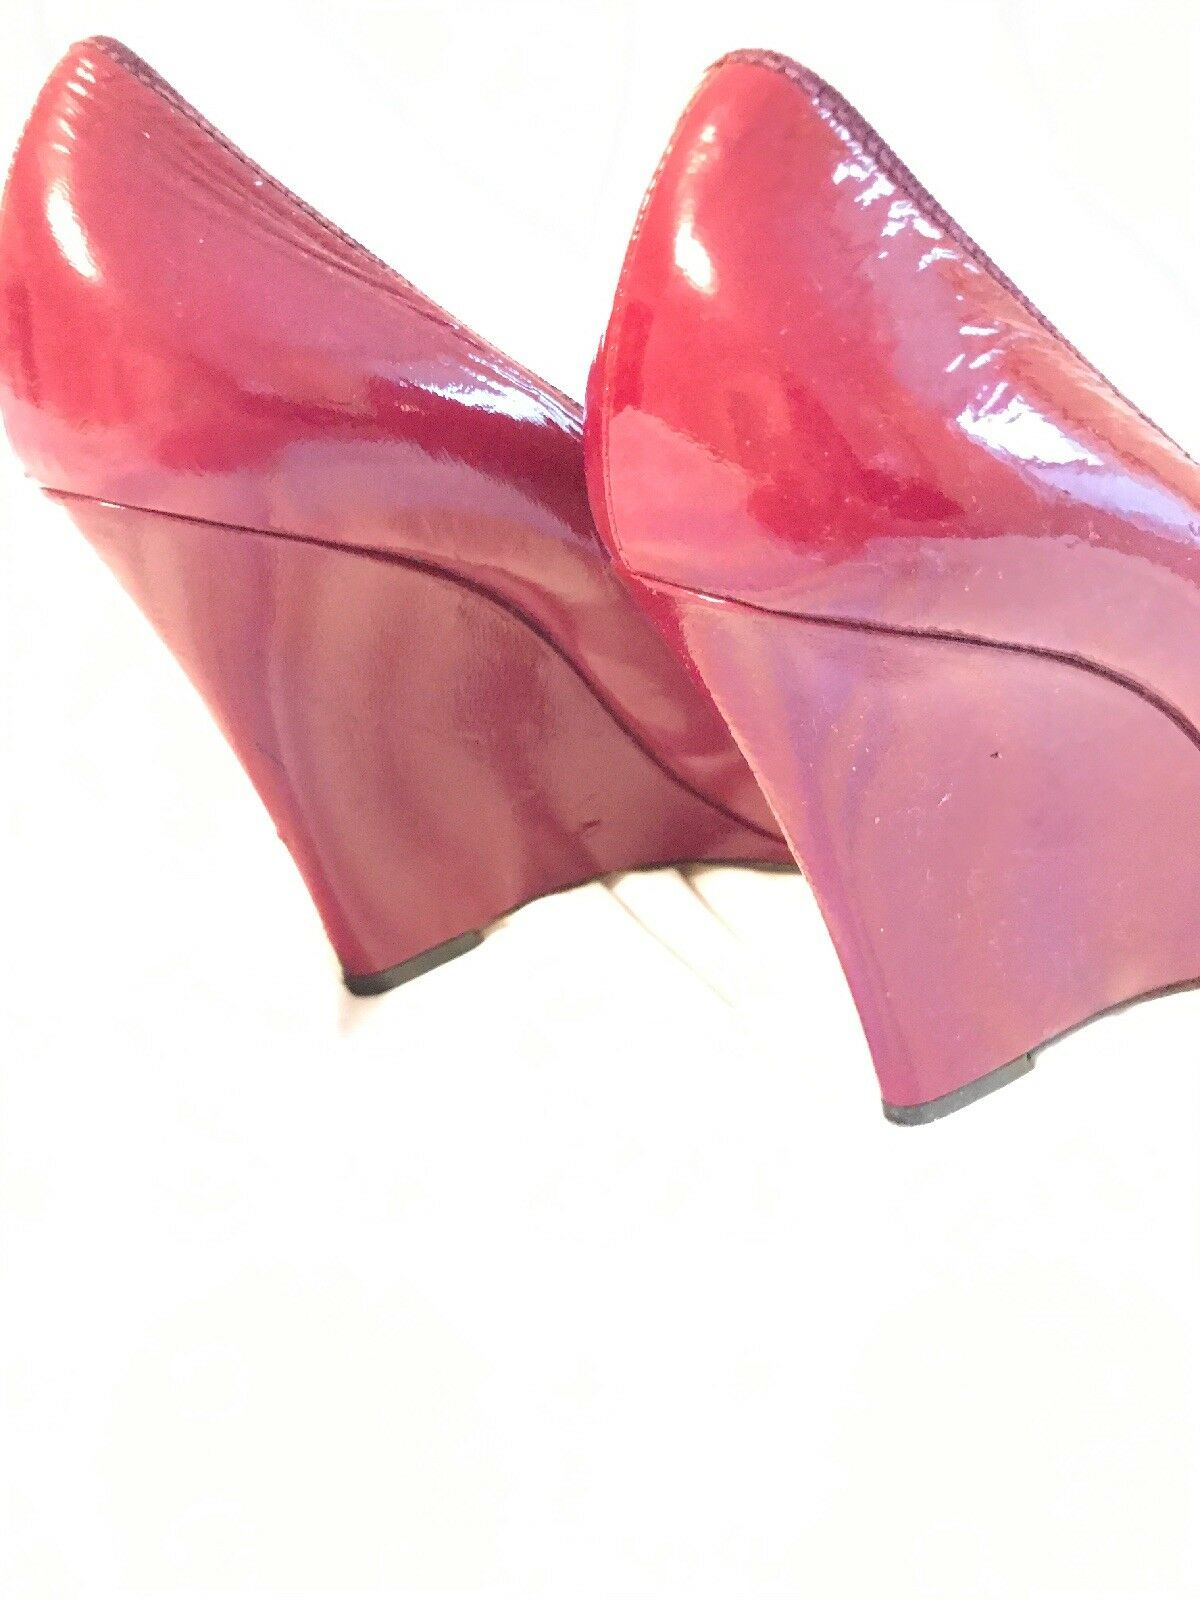 Moschino Rosette Patent Patent Patent Stiletto Wedge Pump 01a786